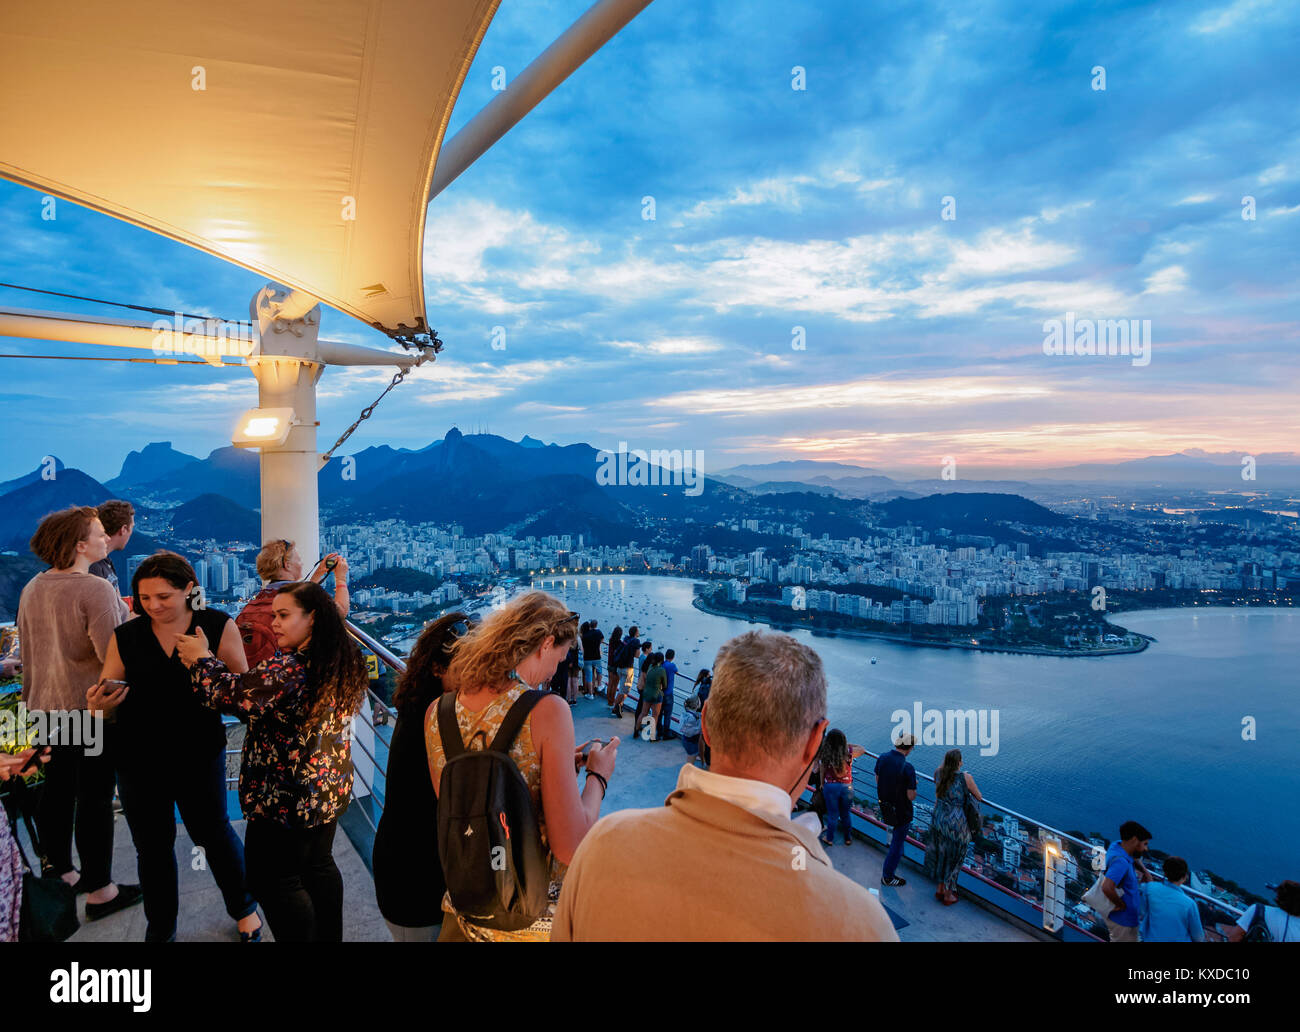 People on top of the Sugarloaf Mountain, Rio de Janeiro, Brazil - Stock Image